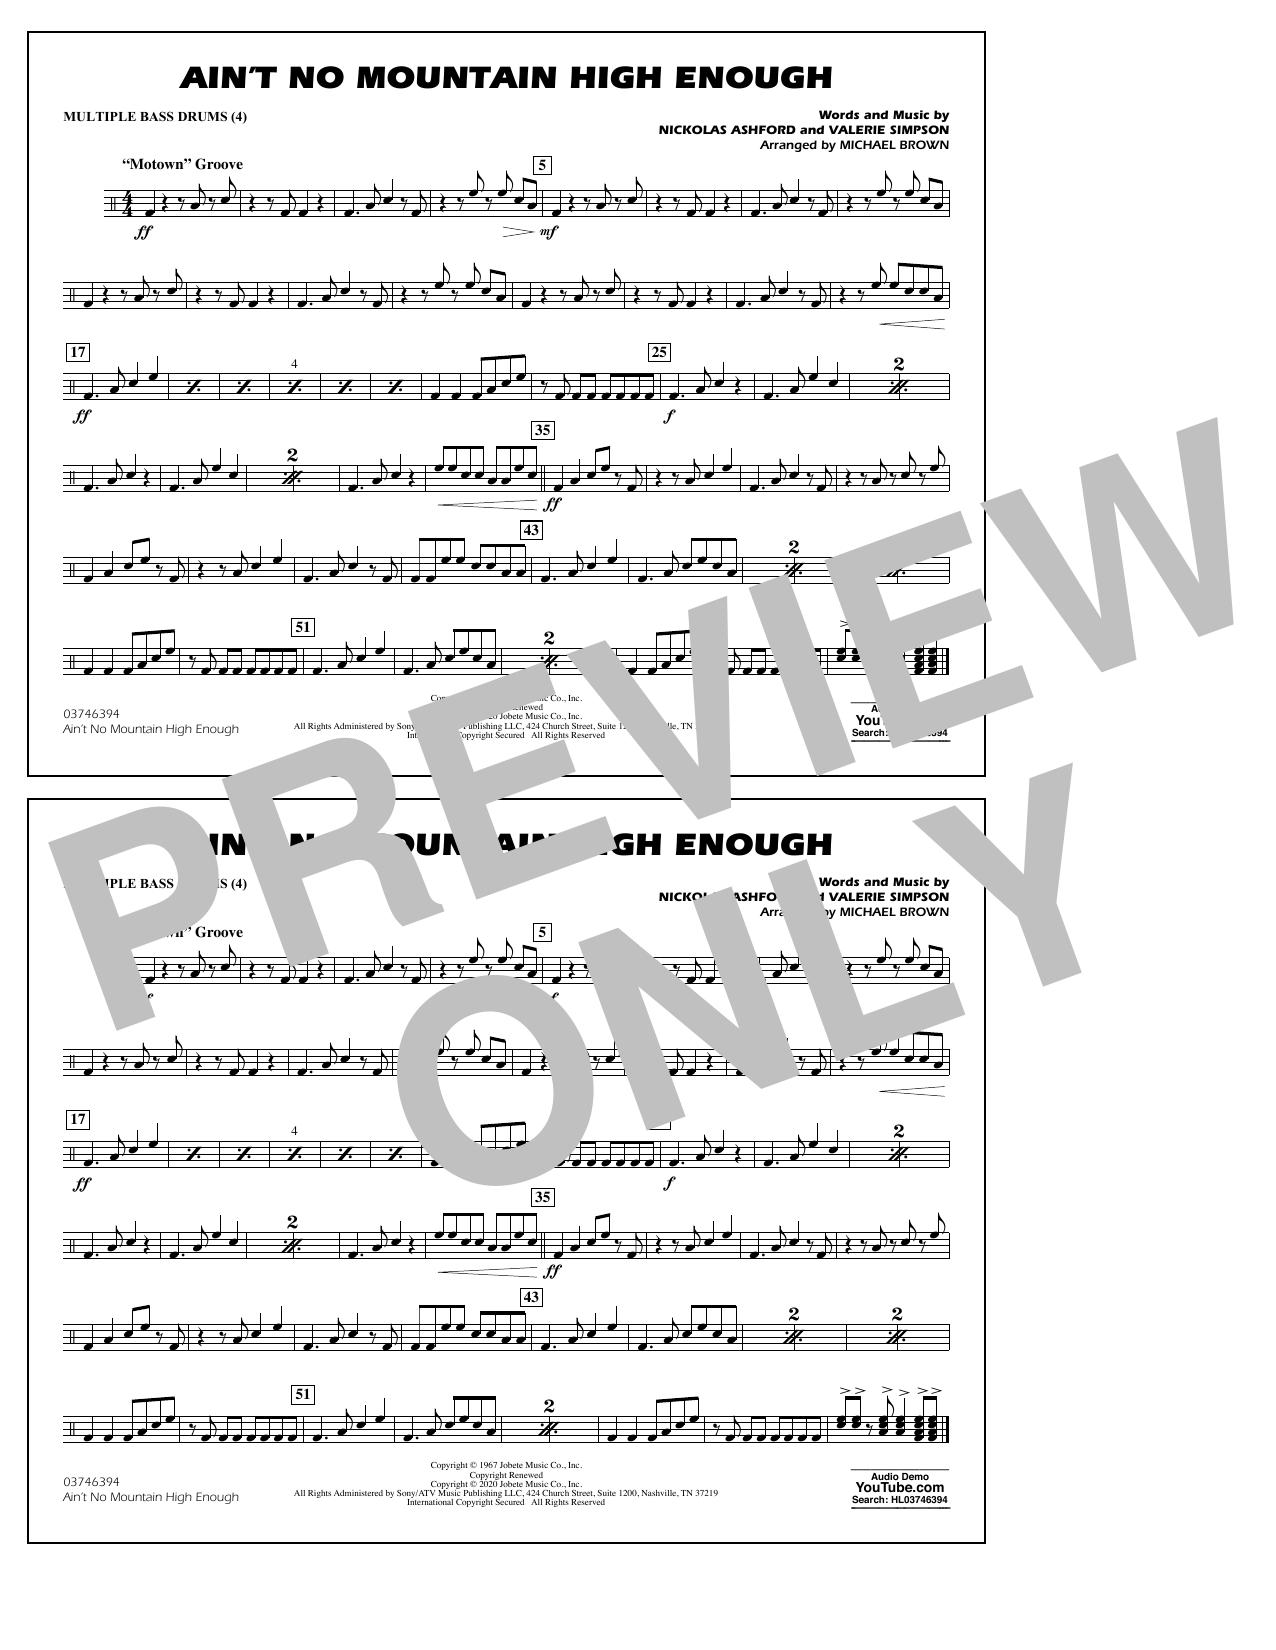 Ain't No Mountain High Enough (arr. Michael Brown) - Multiple Bass Drums Sheet Music